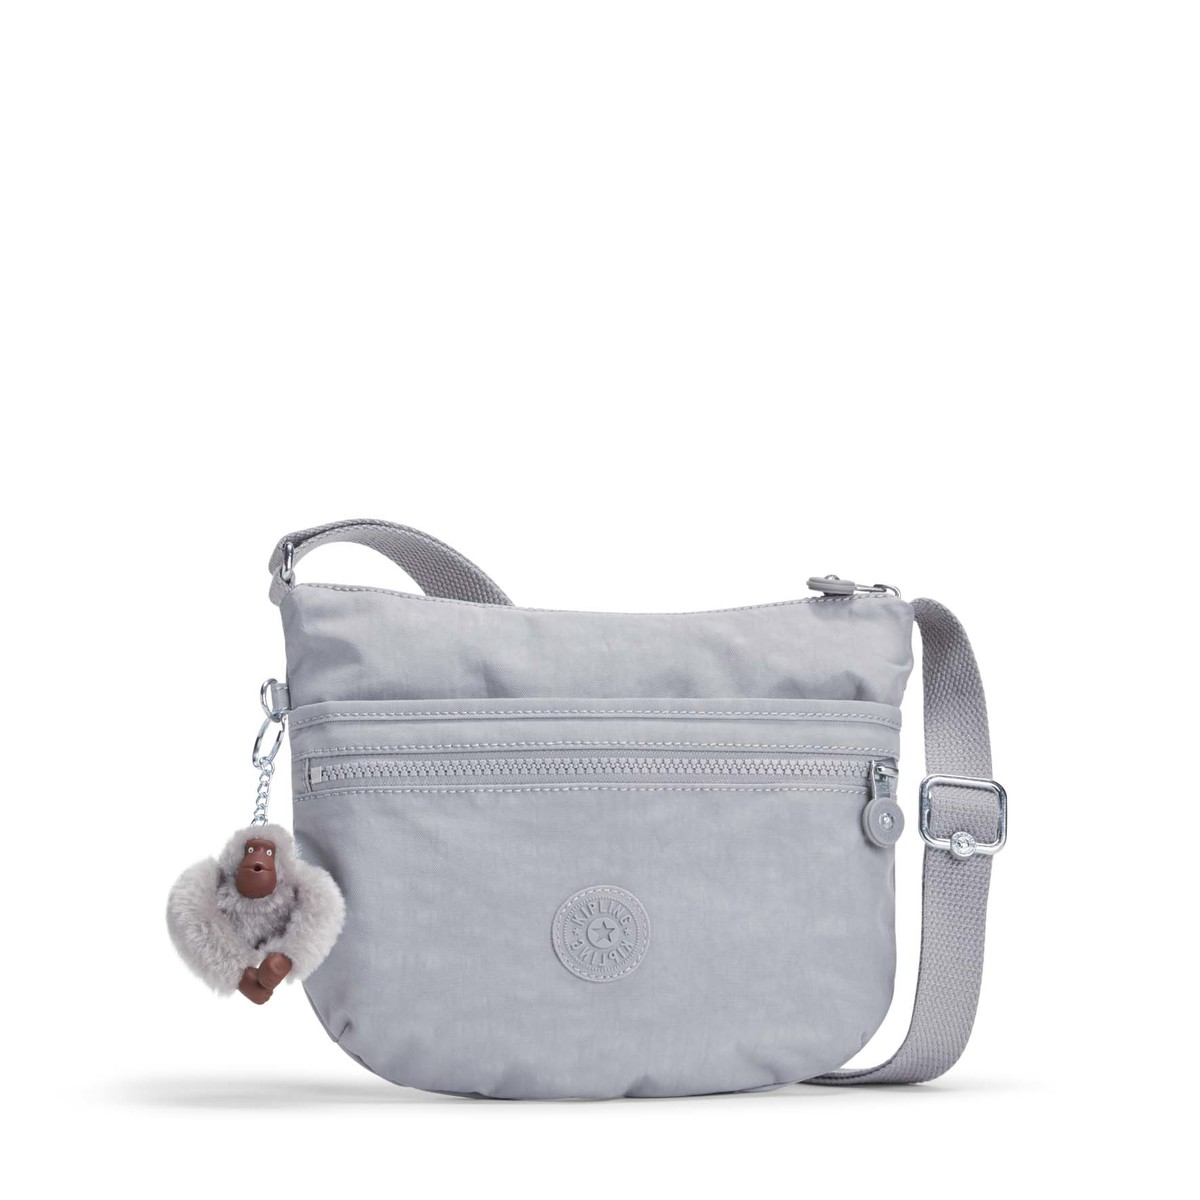 Kipling Handbag Light Grey K00070 Arto S